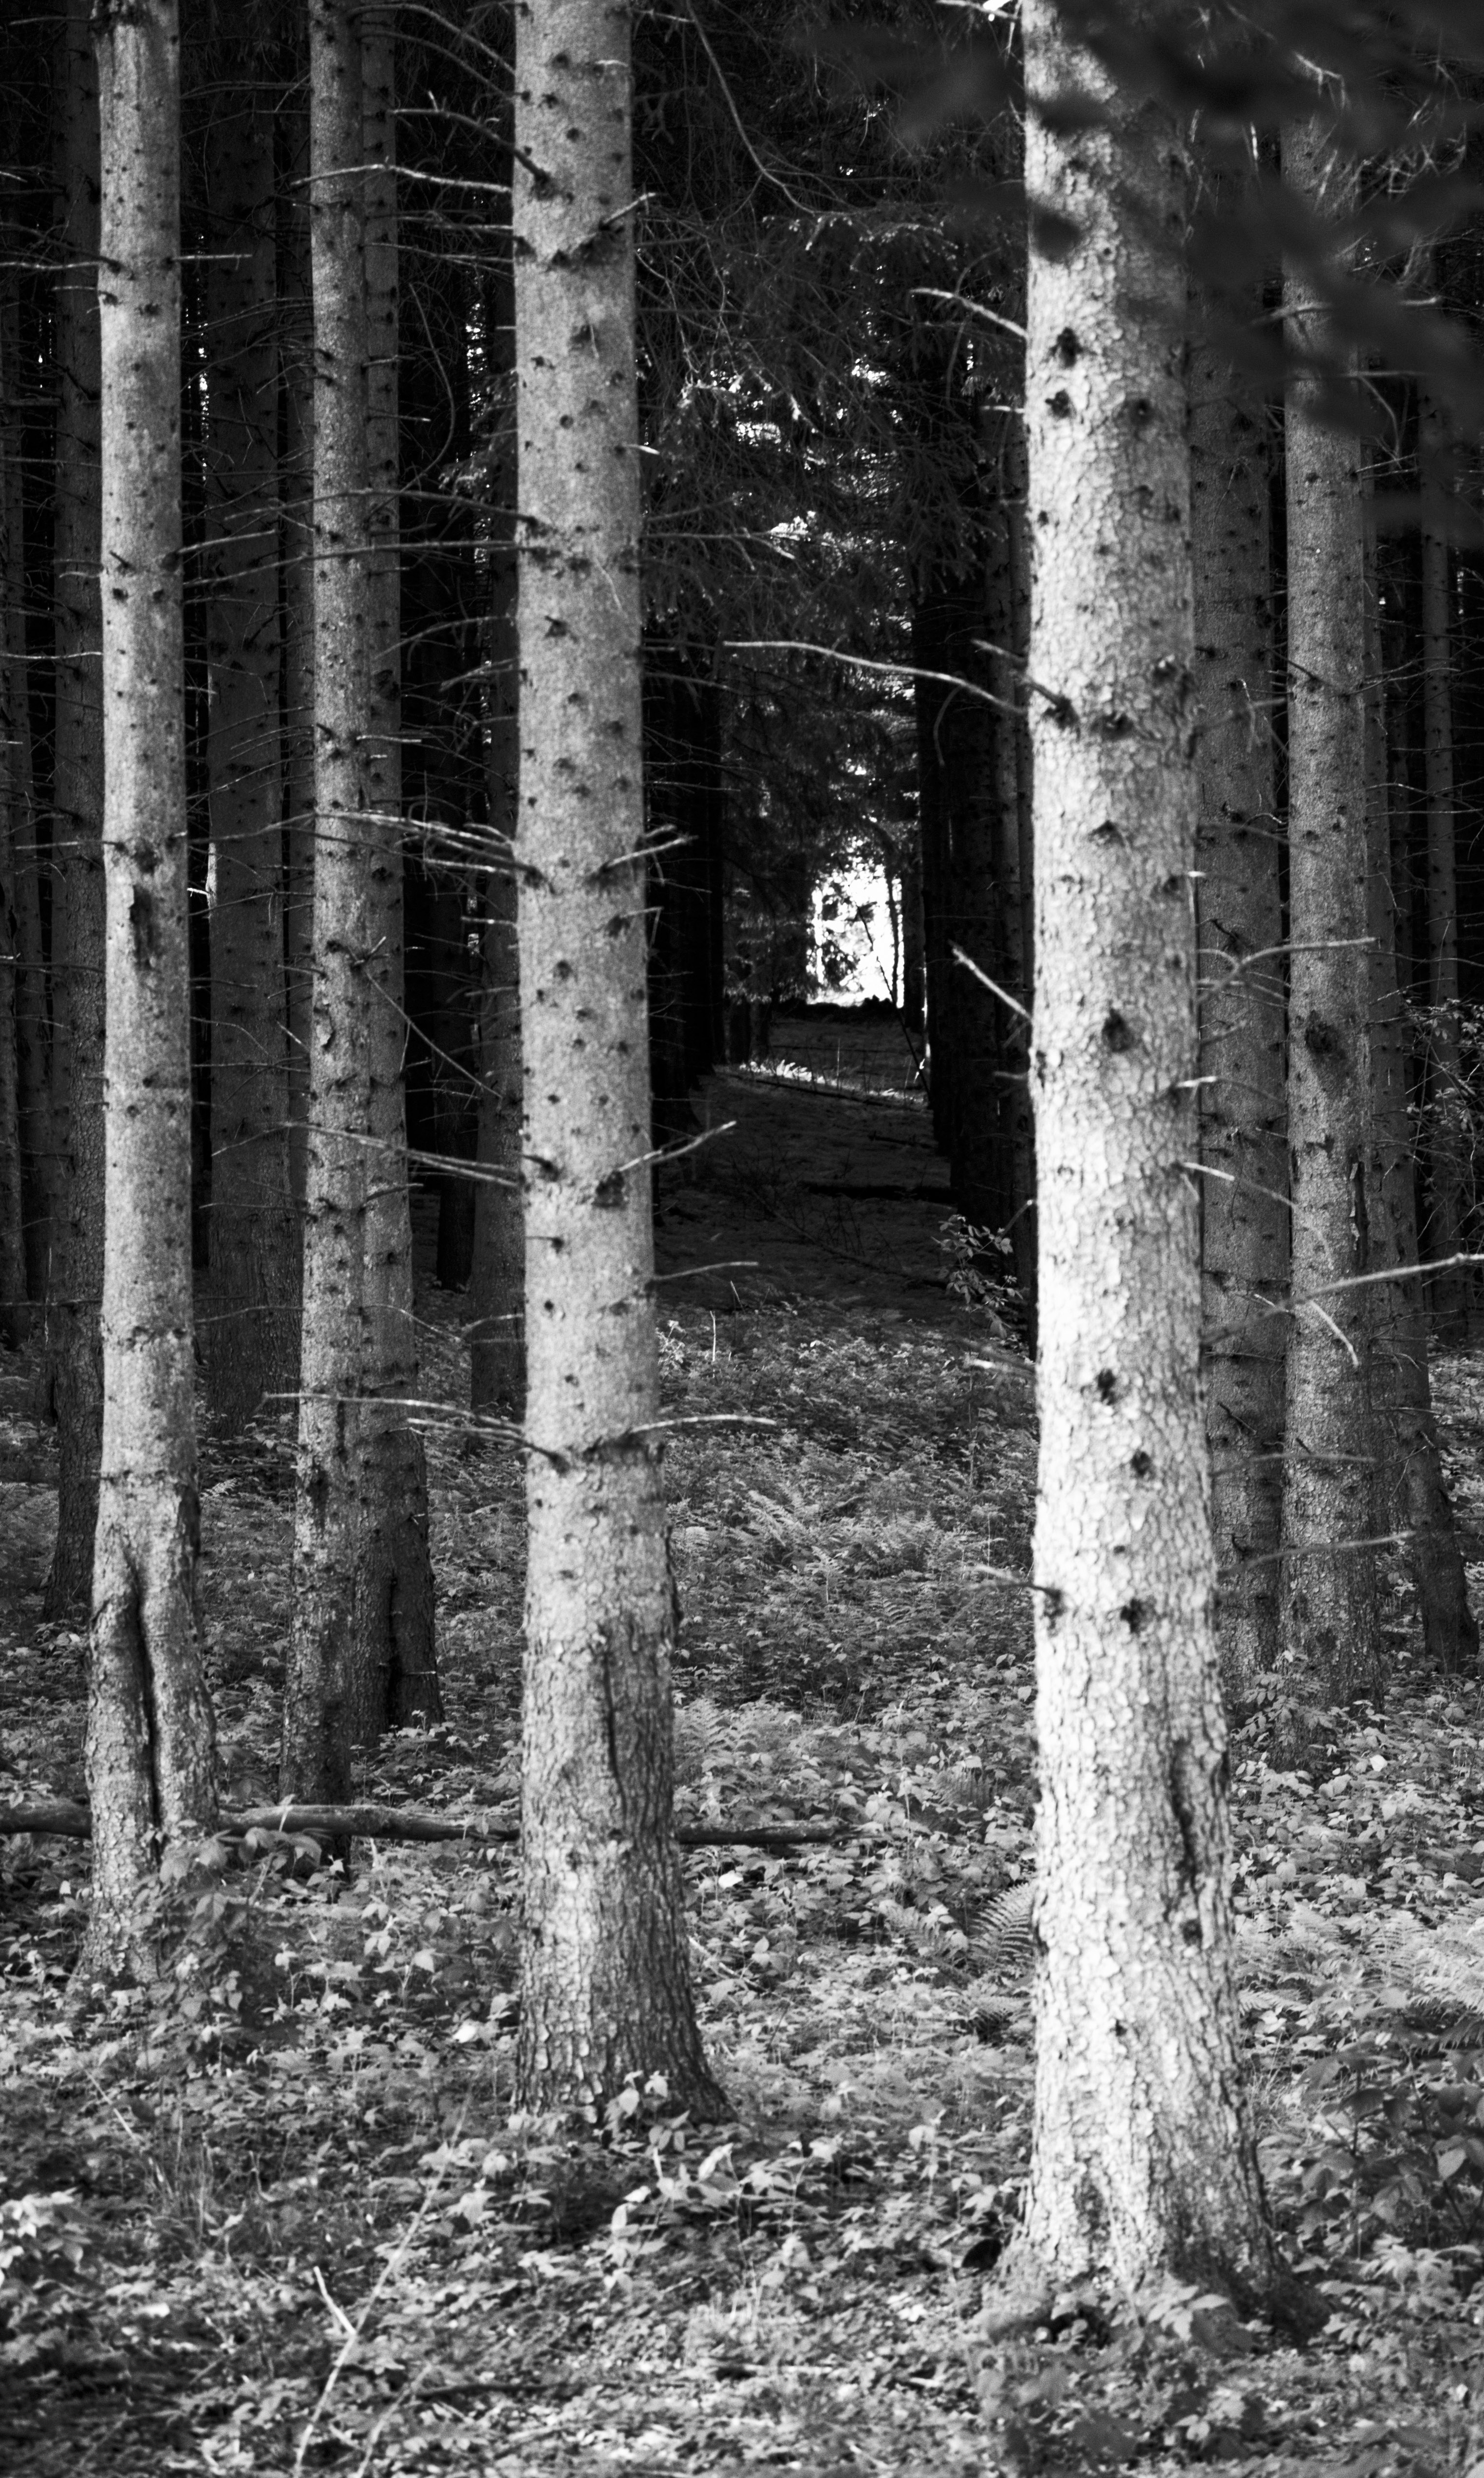 Trees at Christinehof at Christinehof (Brösarp, Sweden) with Leica M Monochrom (Leica Macro-Elmar-M 90mm f/4) by Magnus L Andersson (photography.anderssoneklund.se) at 2013-06-08 19:04:10